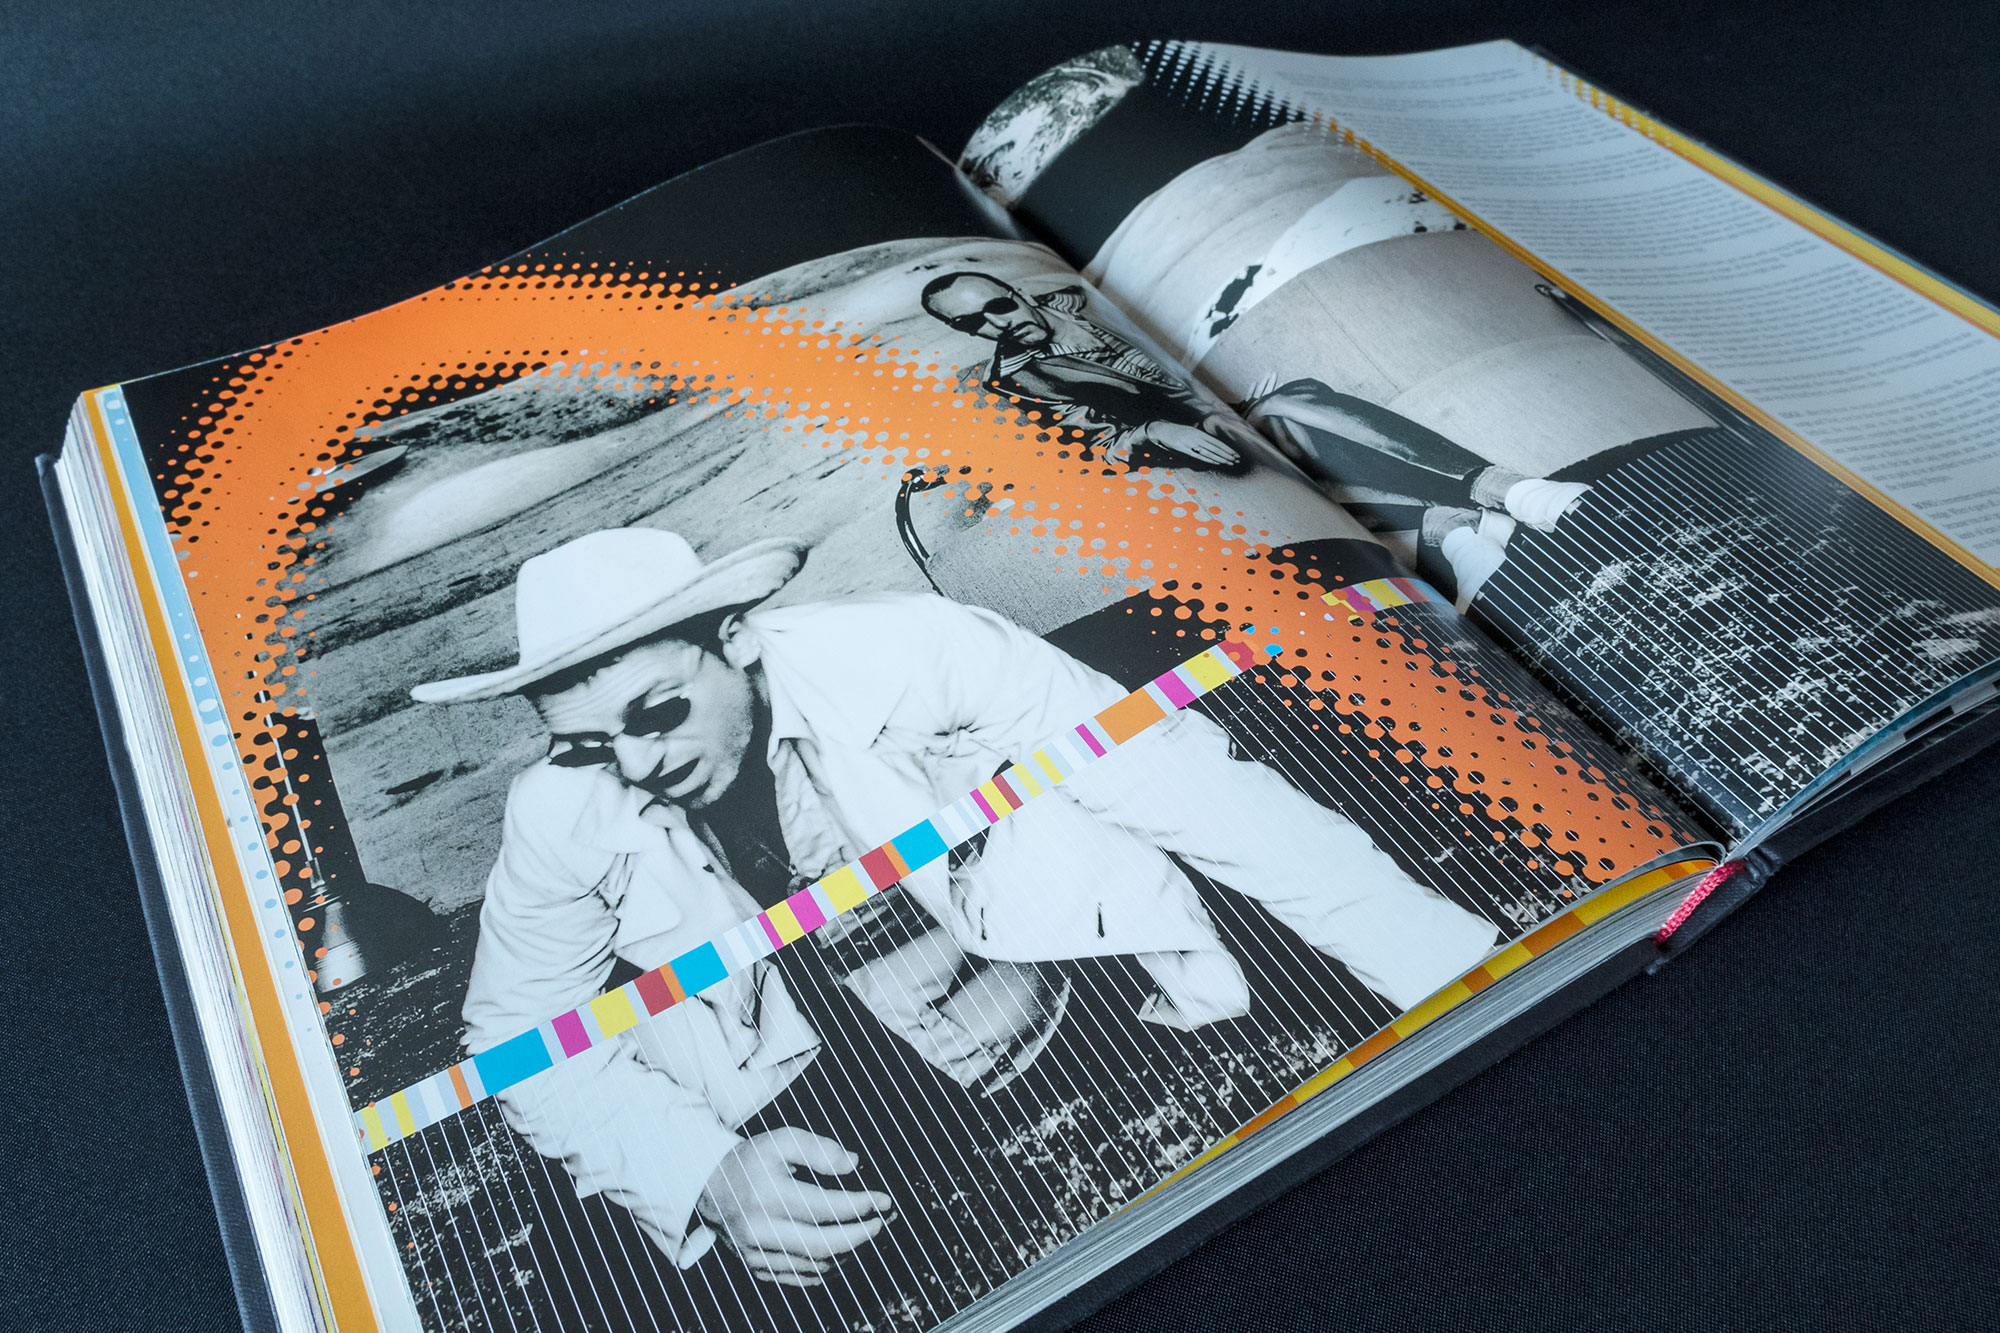 U2 by U2 Book Spread Graphic Design London Dublin 02